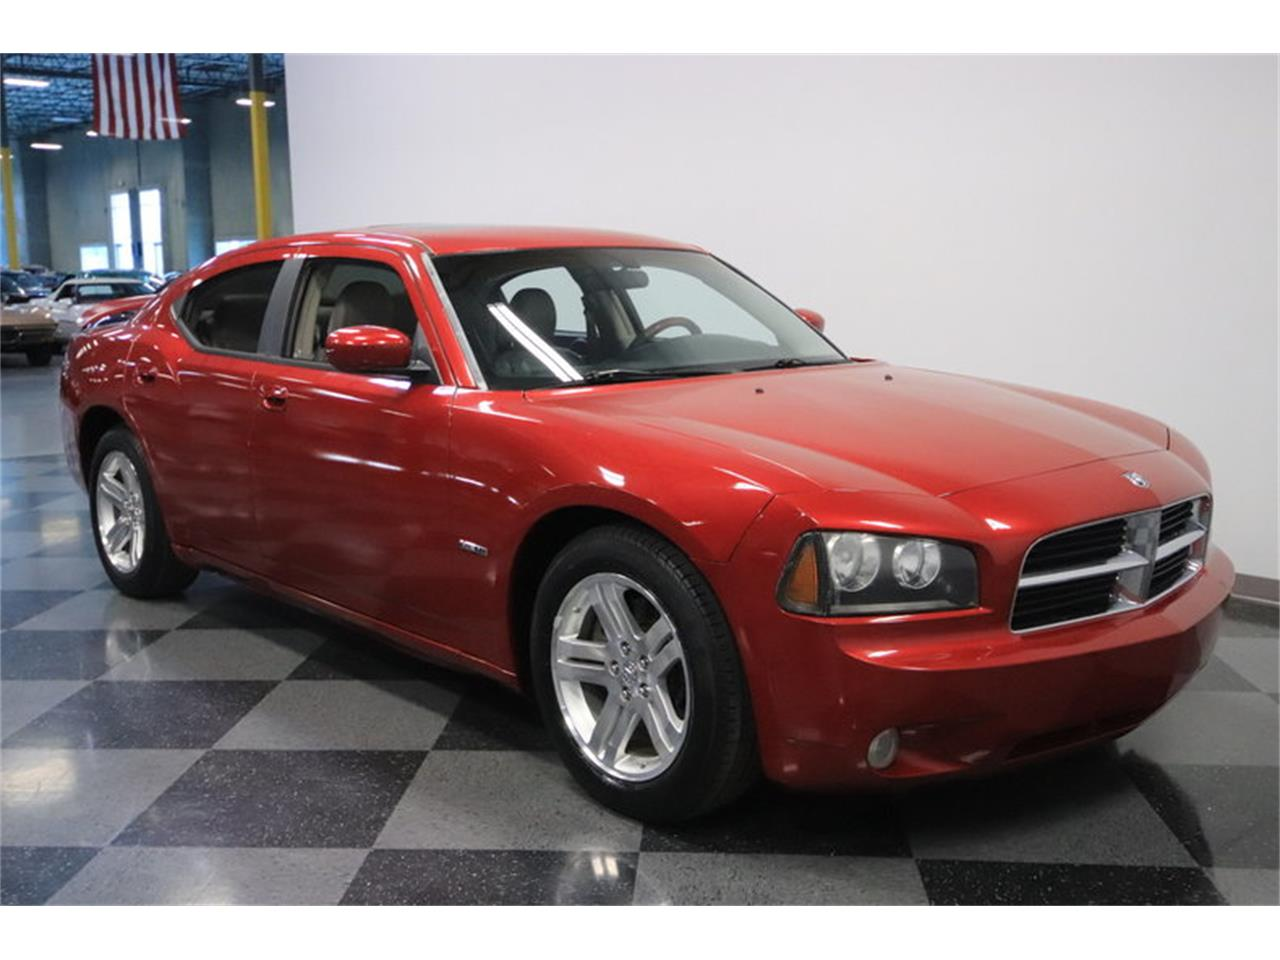 Large Picture of 2006 Dodge Charger R/T located in Mesa Arizona - $8,995.00 Offered by Streetside Classics - Phoenix - MZDF